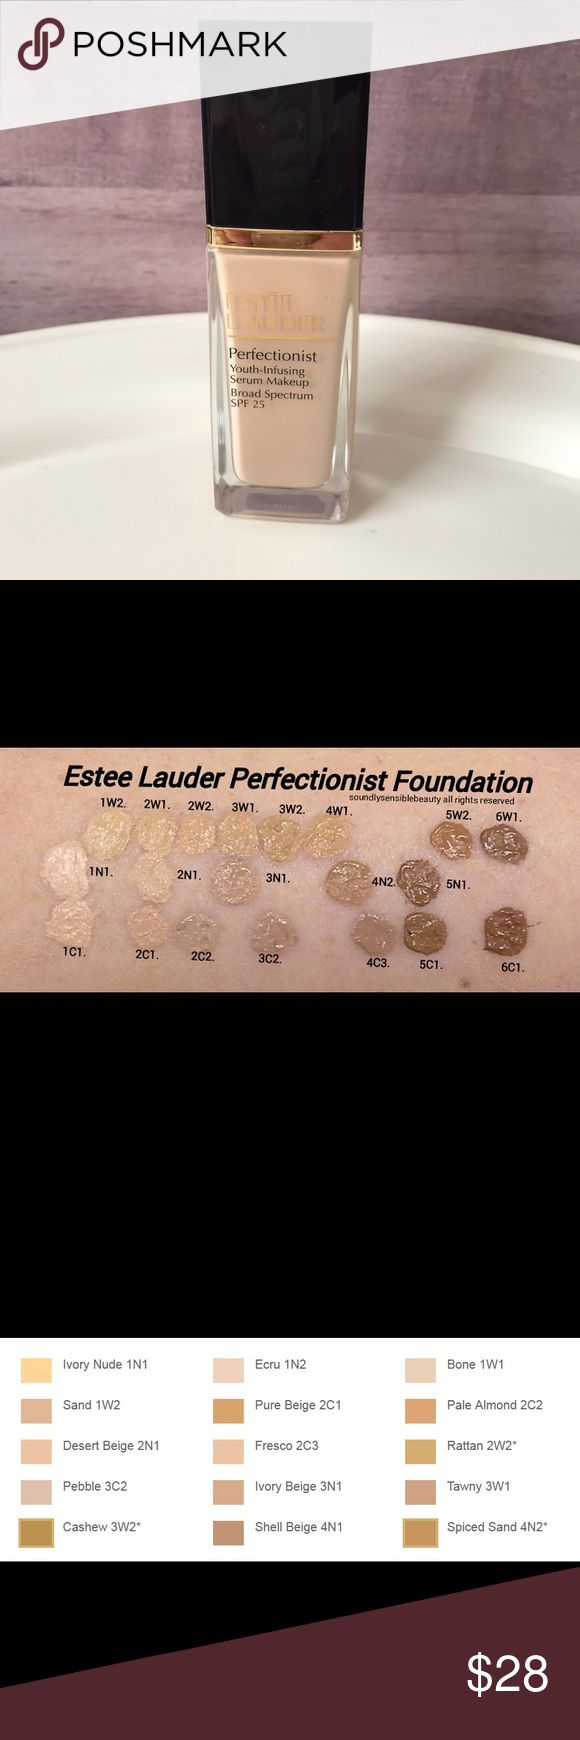 Estee Lauder Perfectionist Foundation Shade is 1N1 Ivory Nude. Color chart & swatch pics are included in pics to help determine if shade matches your complexion. Has only been used once, it didn't match as well as I thought it would. Retails for $47. Bundle with other items for a private offer or feel free to submit your own via the offer button. No trades. From a smoke free & pet free home. Estee Lauder Makeup Foundation